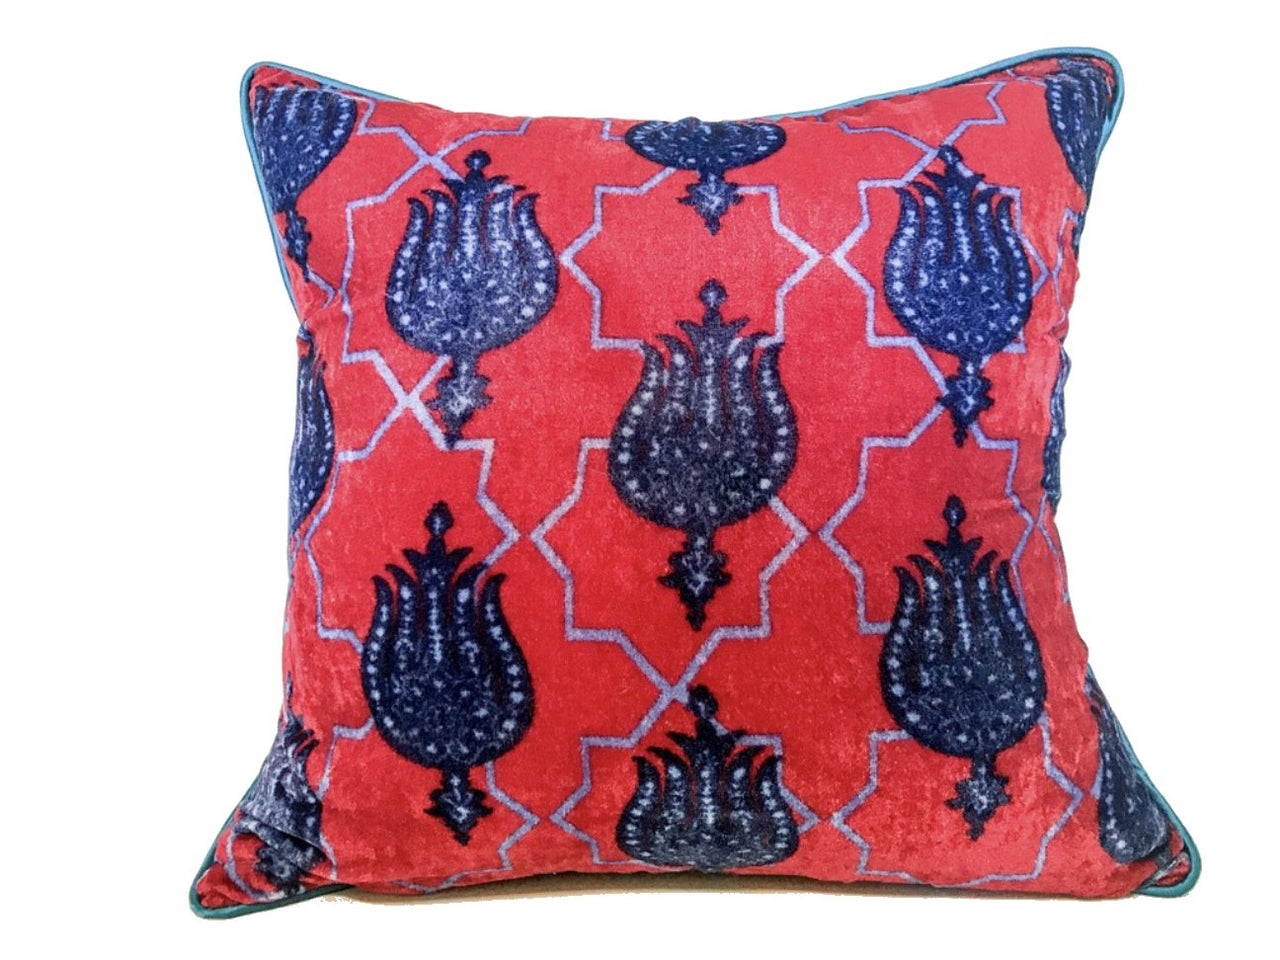 Velvet Cushion 20x20 Closed Blue Lotus Flower on Red Background - Maison Fusion